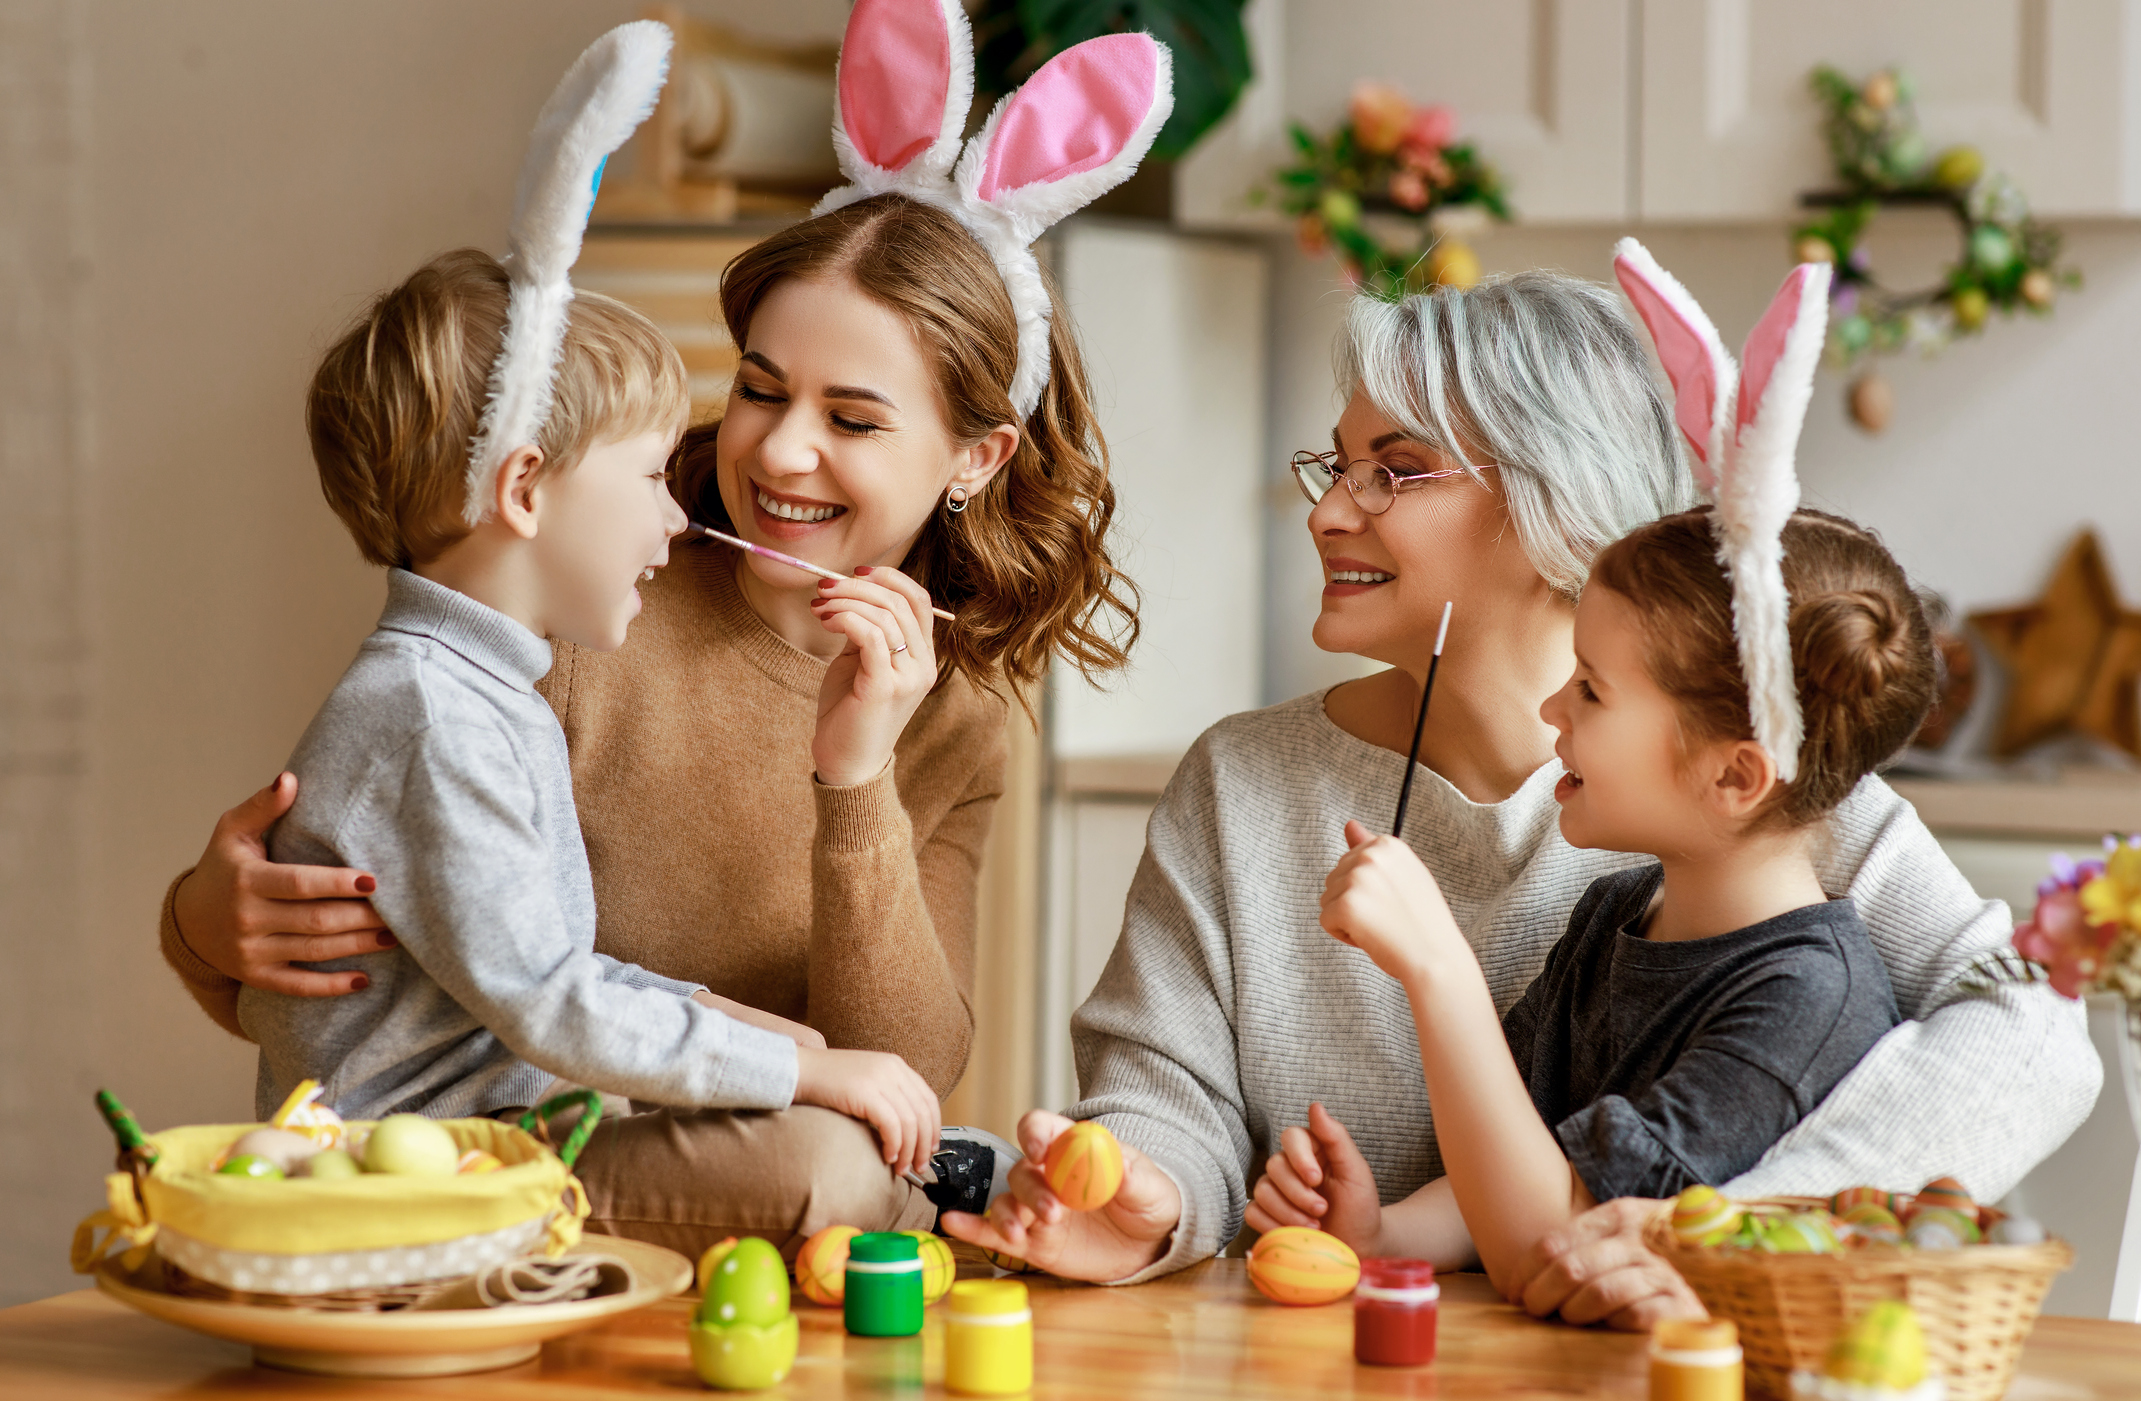 Prepare for Easter 2021 in Carrollton by Shopping All Things Spring at Trinity Plaza